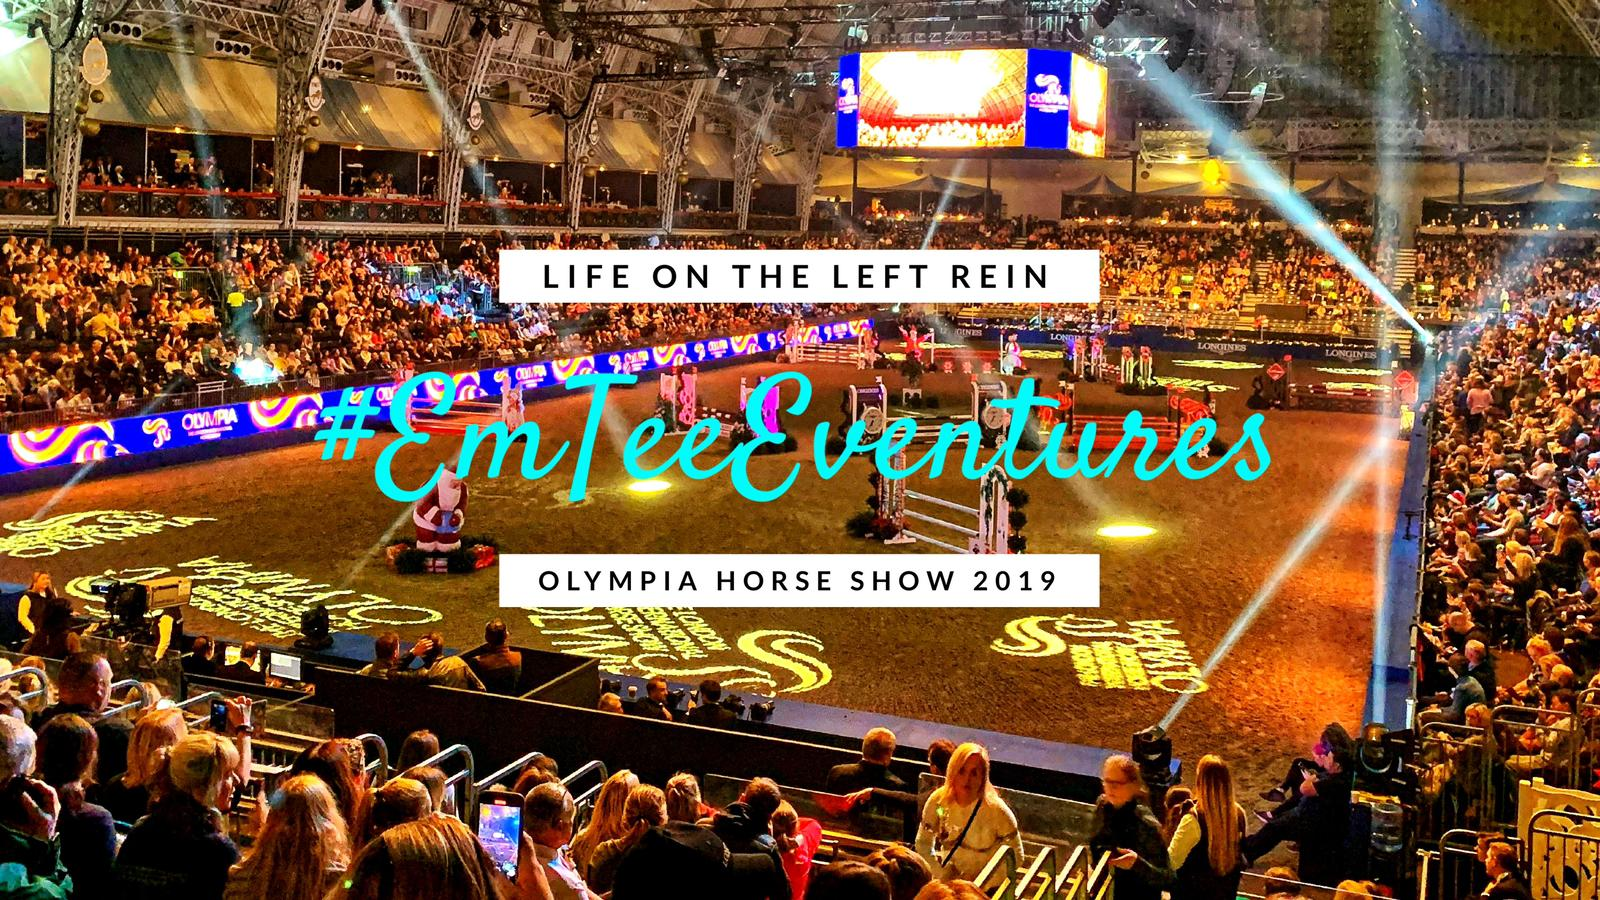 OLYMPIA HORSE SHOW 2019